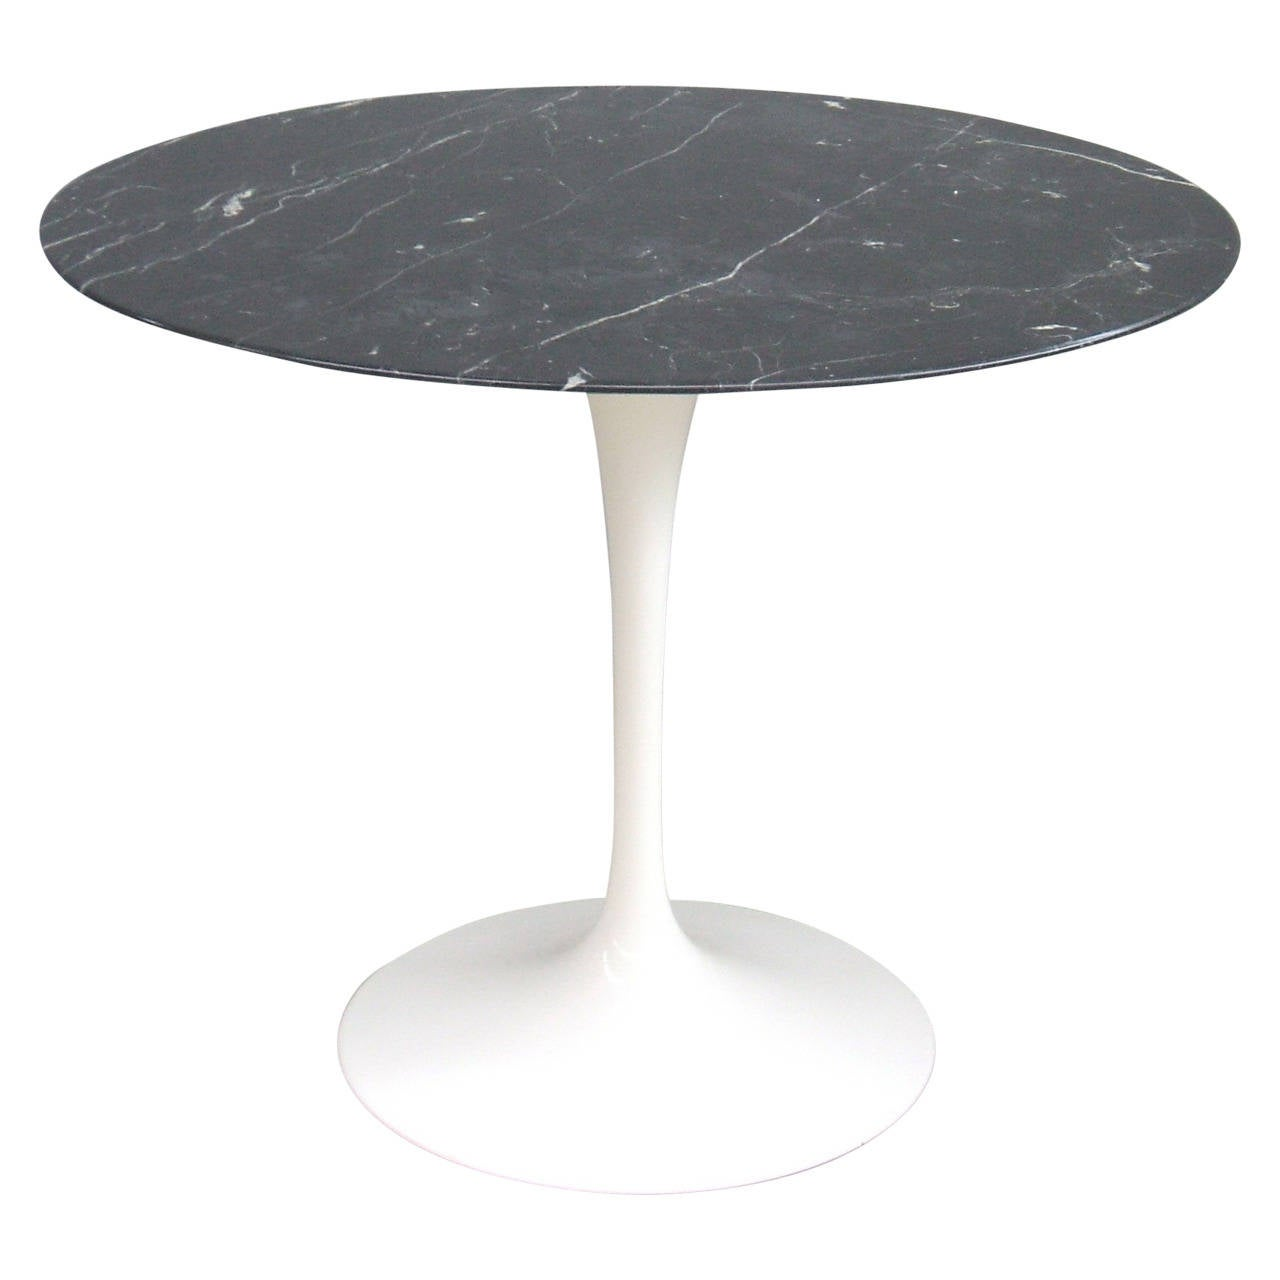 marble top tulip table by eero saarinen for knoll. Black Bedroom Furniture Sets. Home Design Ideas